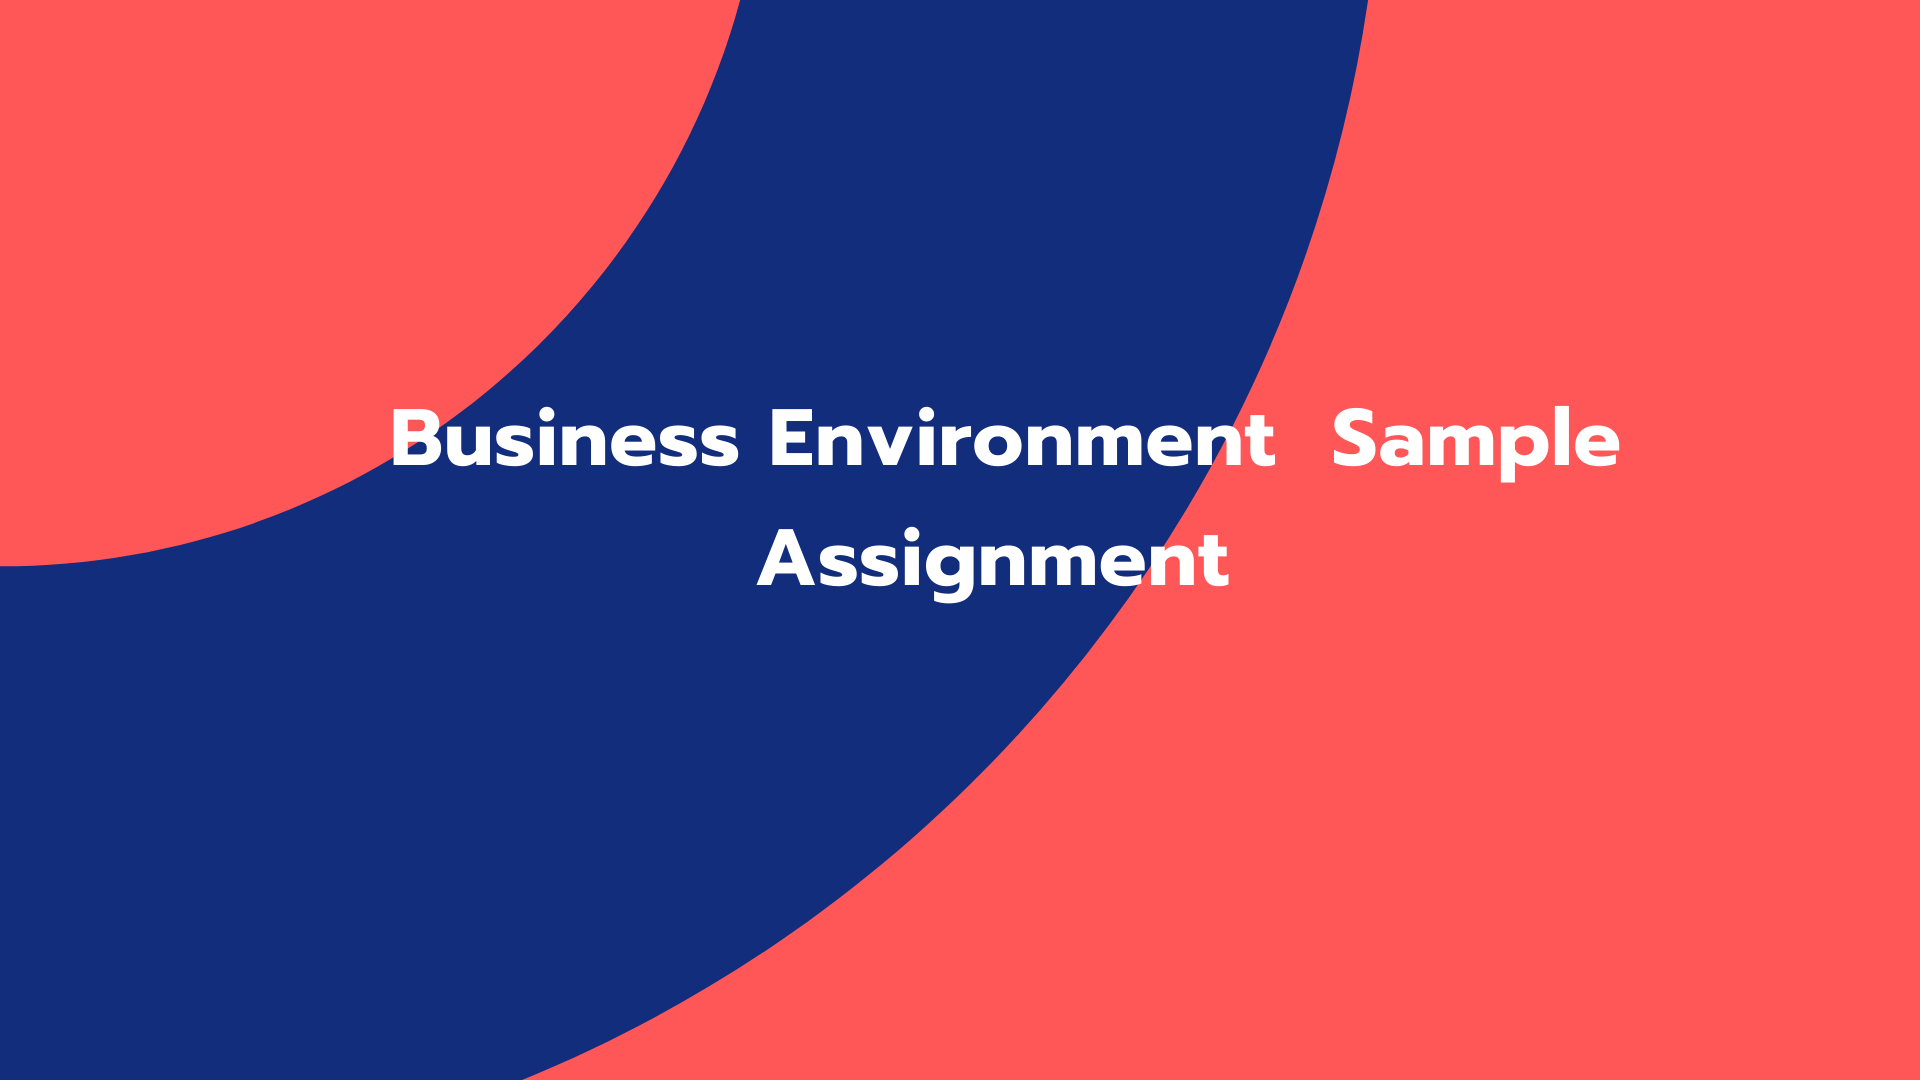 Business Environment Sample Assignment